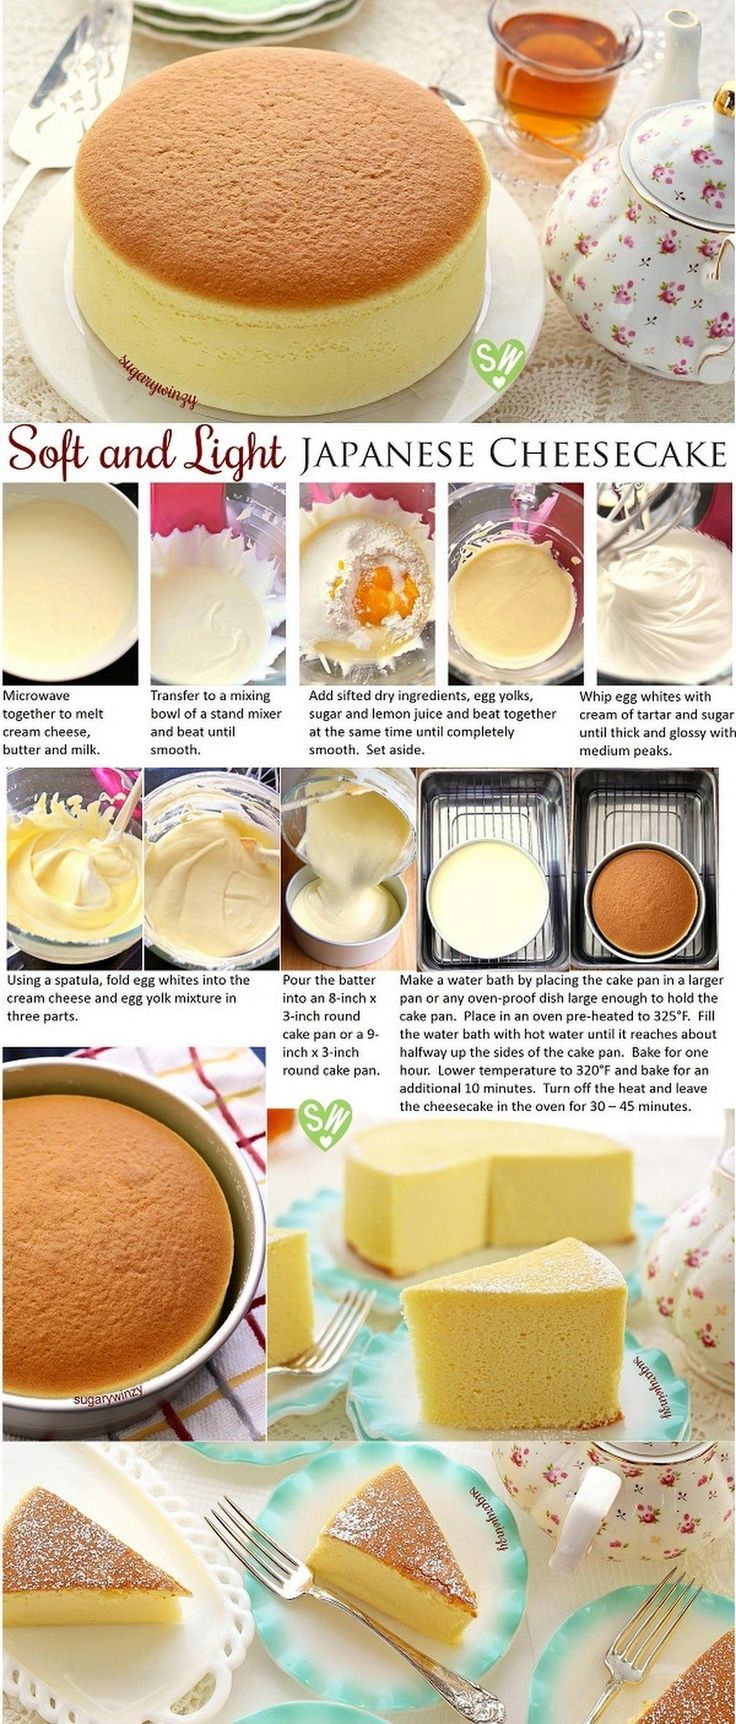 Light and moist Japanese cheesecake is so good you're likely to make it more than once. http://sugarywinzy.com/soft-and-light-as-air-japanese-cheesecake/?utm_content=bufferb5045&utm_medium=social&utm_source=pinterest.com&utm_campaign=buffer - SugaryWinzy - Google+